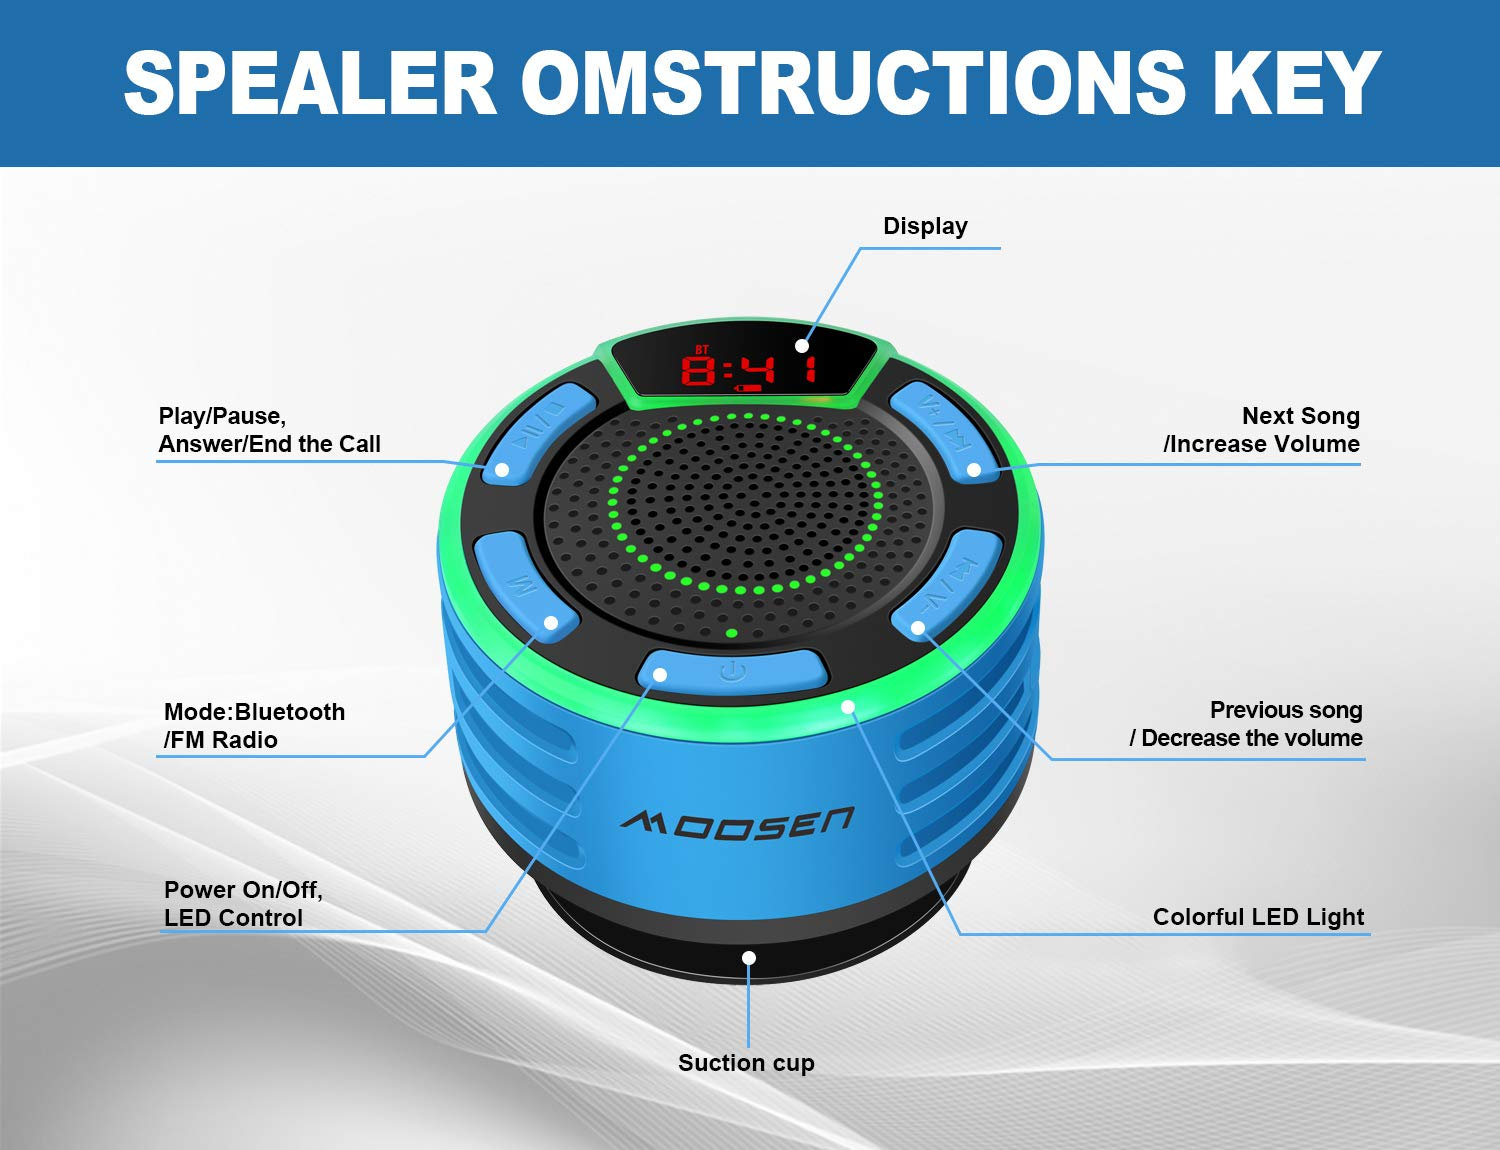 TWS and Light Show Loud HD Sound and Deep Bass Speaker for Bathroom Pool Beach Outdoor Bluetooth Speaker moosen IPX7 Waterproof Portable Wireless Bluetooth Shower Speaker with FM Radio LED Display